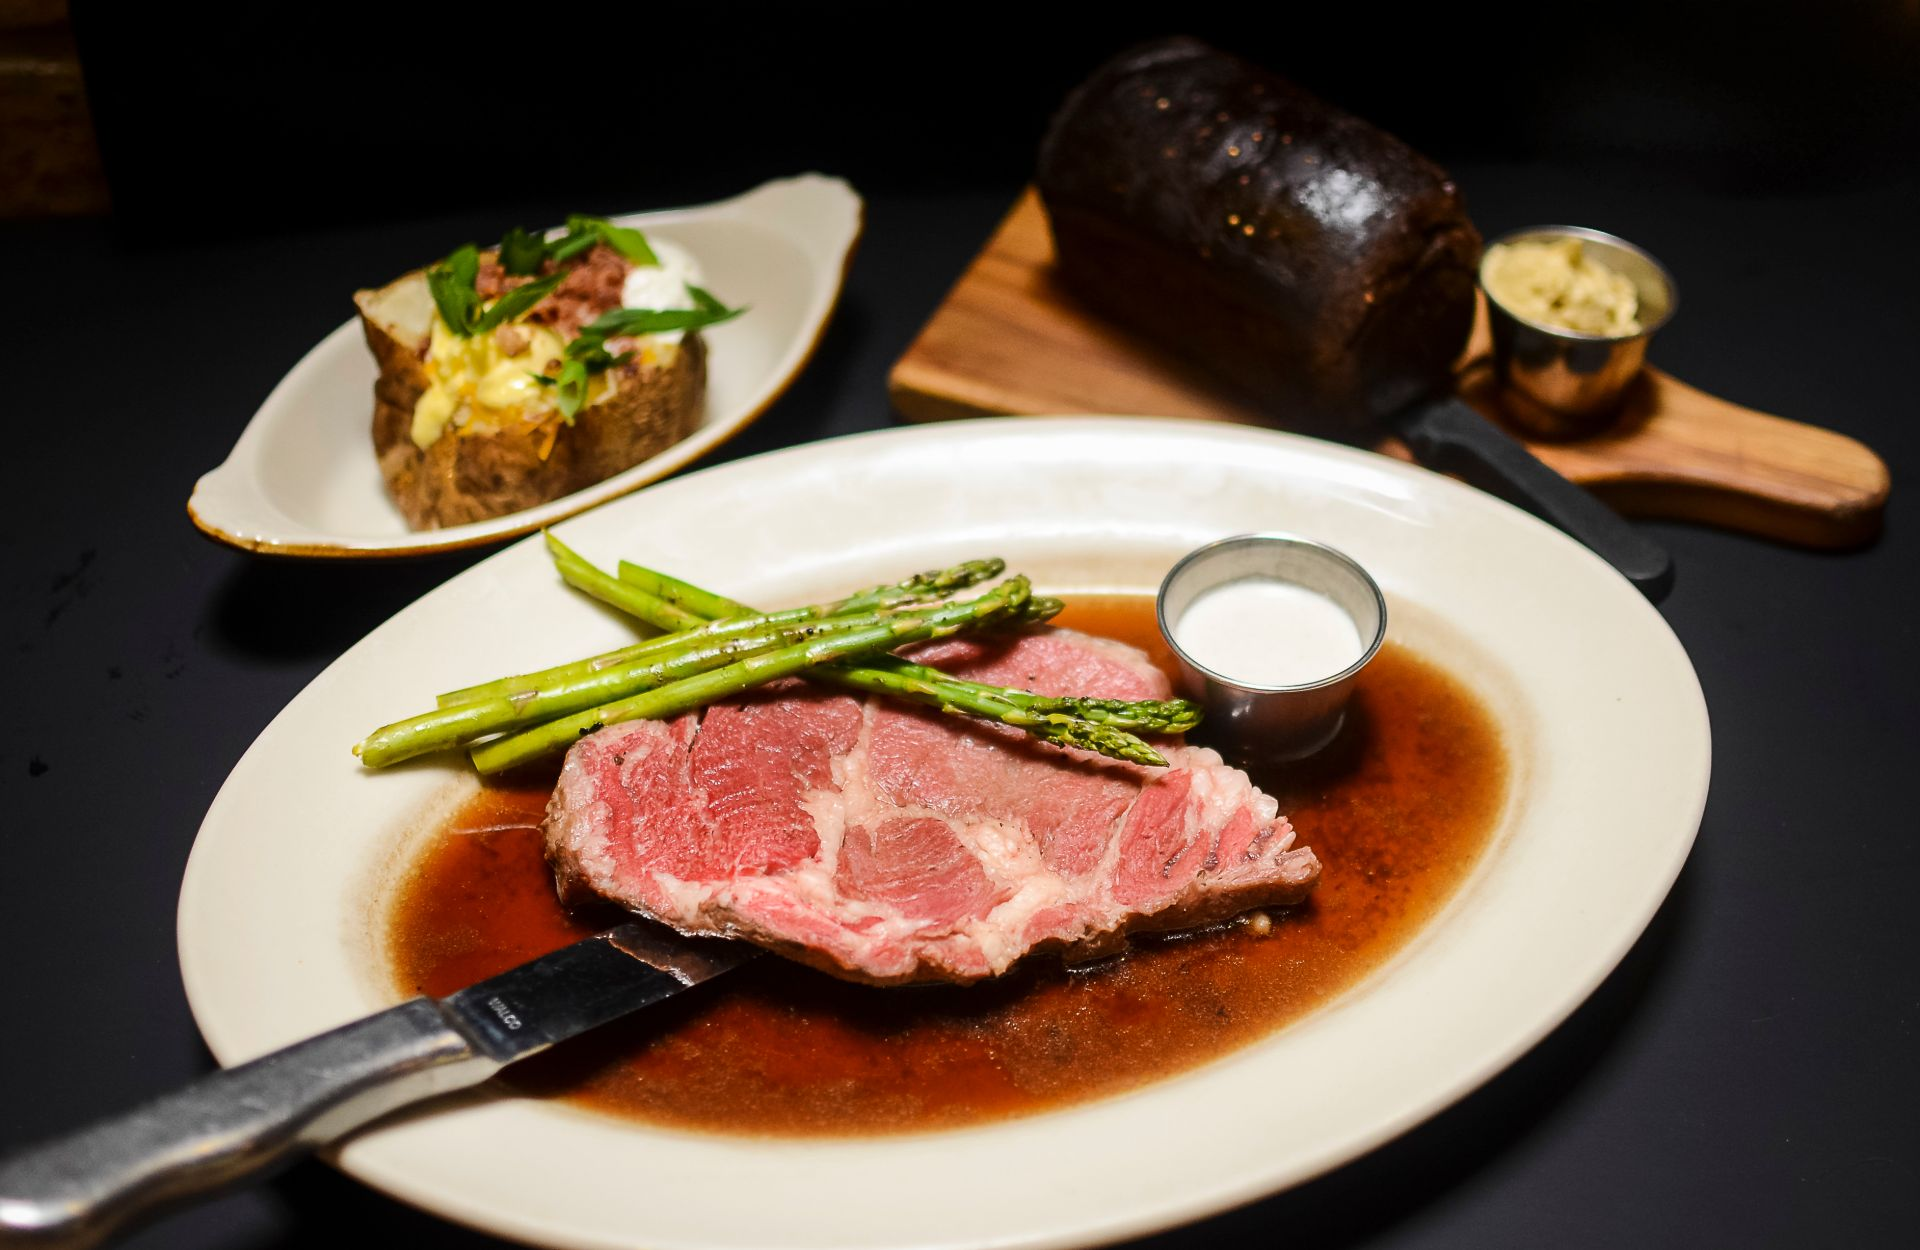 Prime rib on a plate with asparagus and a side of butter, a split baked potato with cheese and bacon and bread with butter